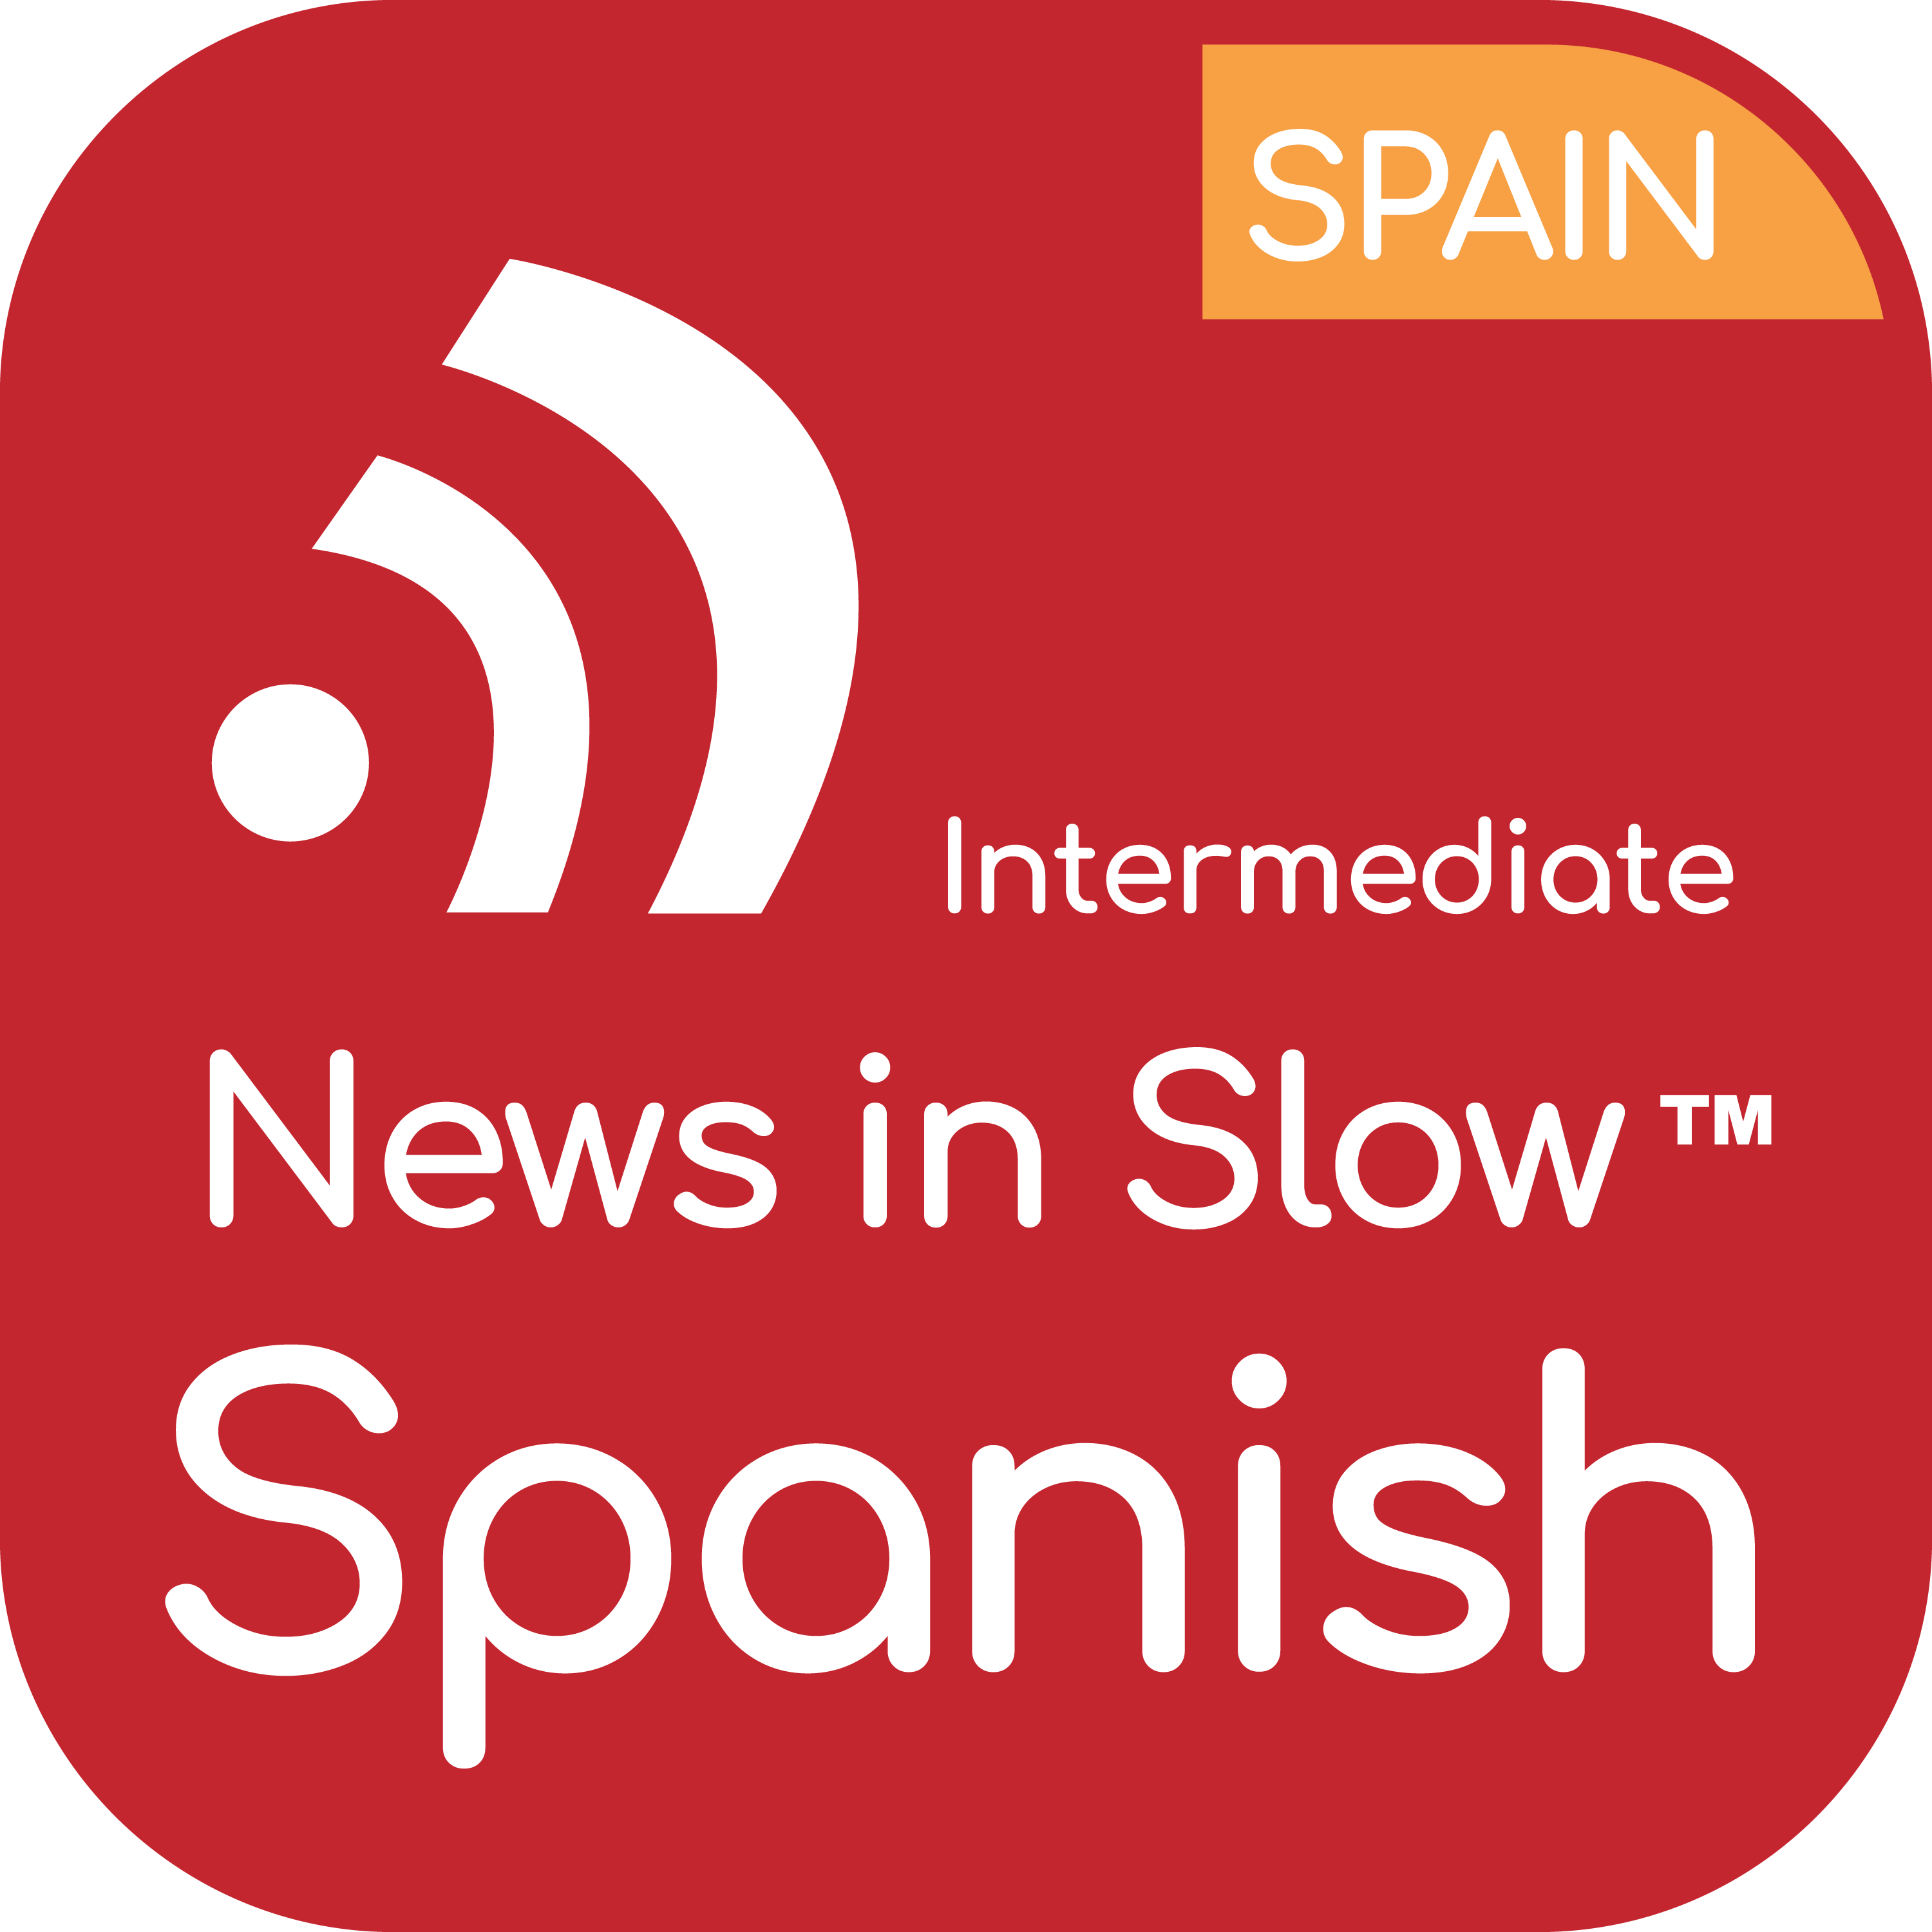 News in Slow Spanish - #579 - Intermediate Spanish Weekly Program